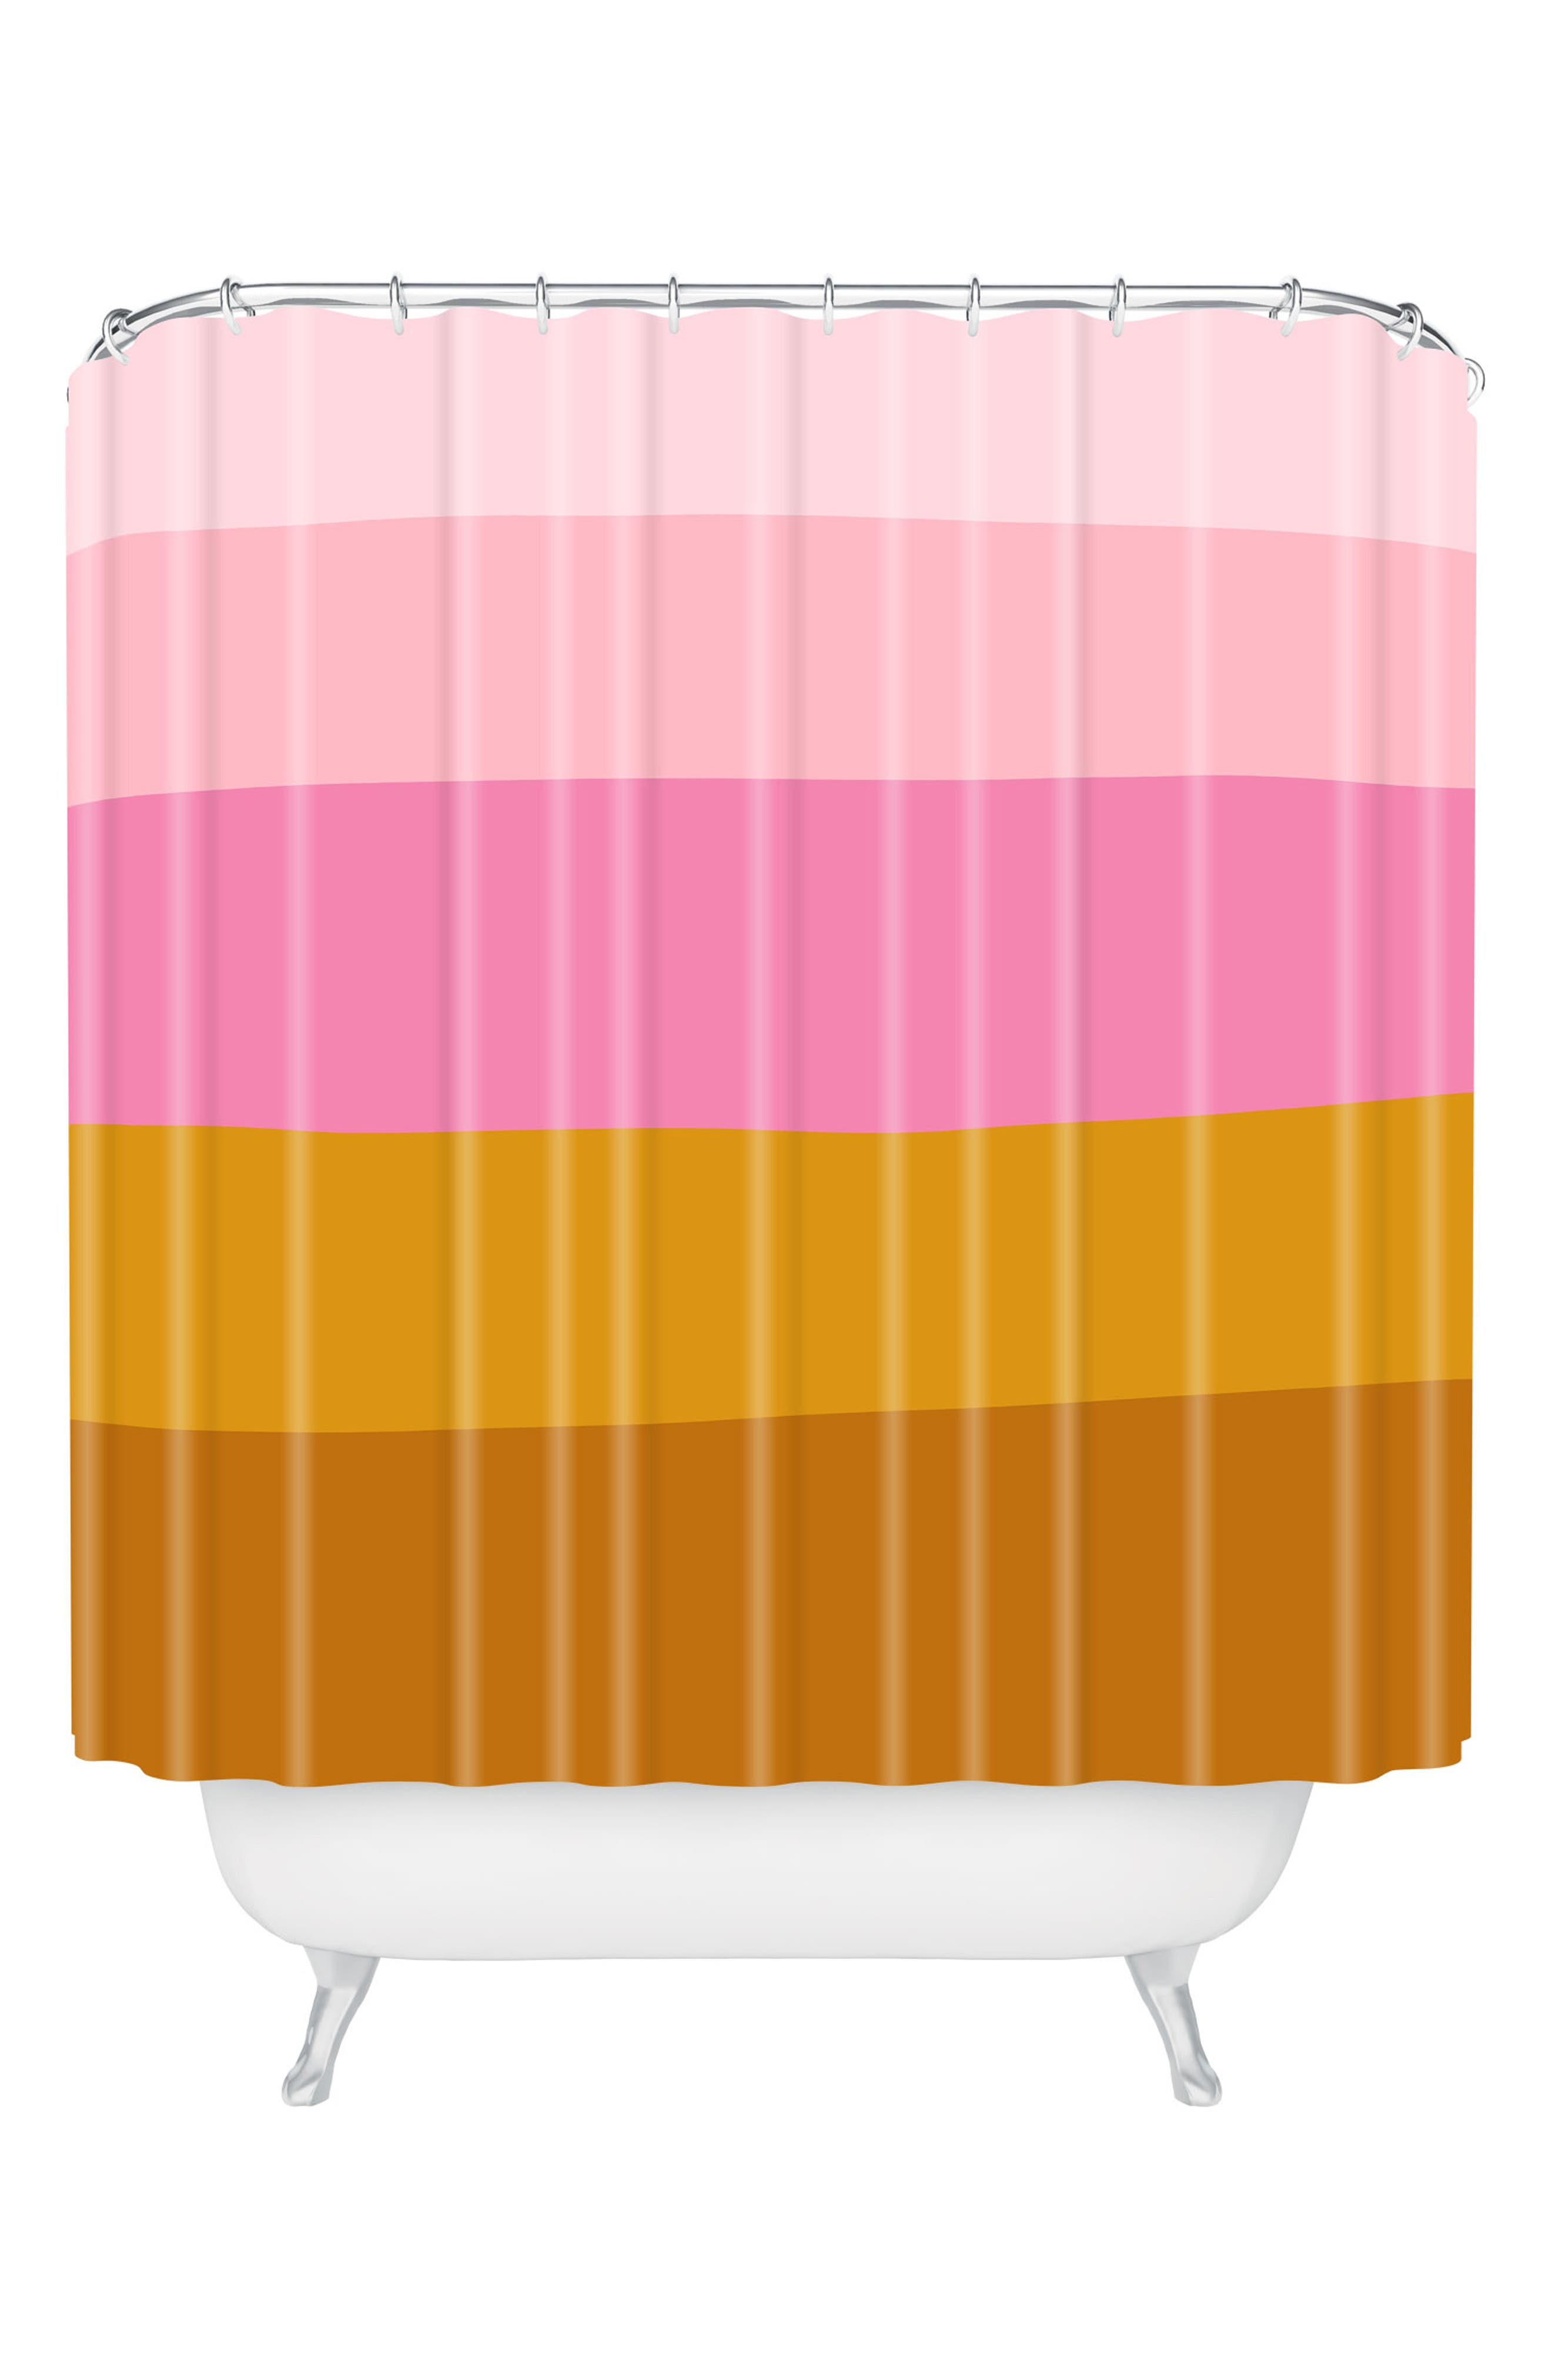 Deny Designs June Journal Retro Shower Curtain Nordstrom